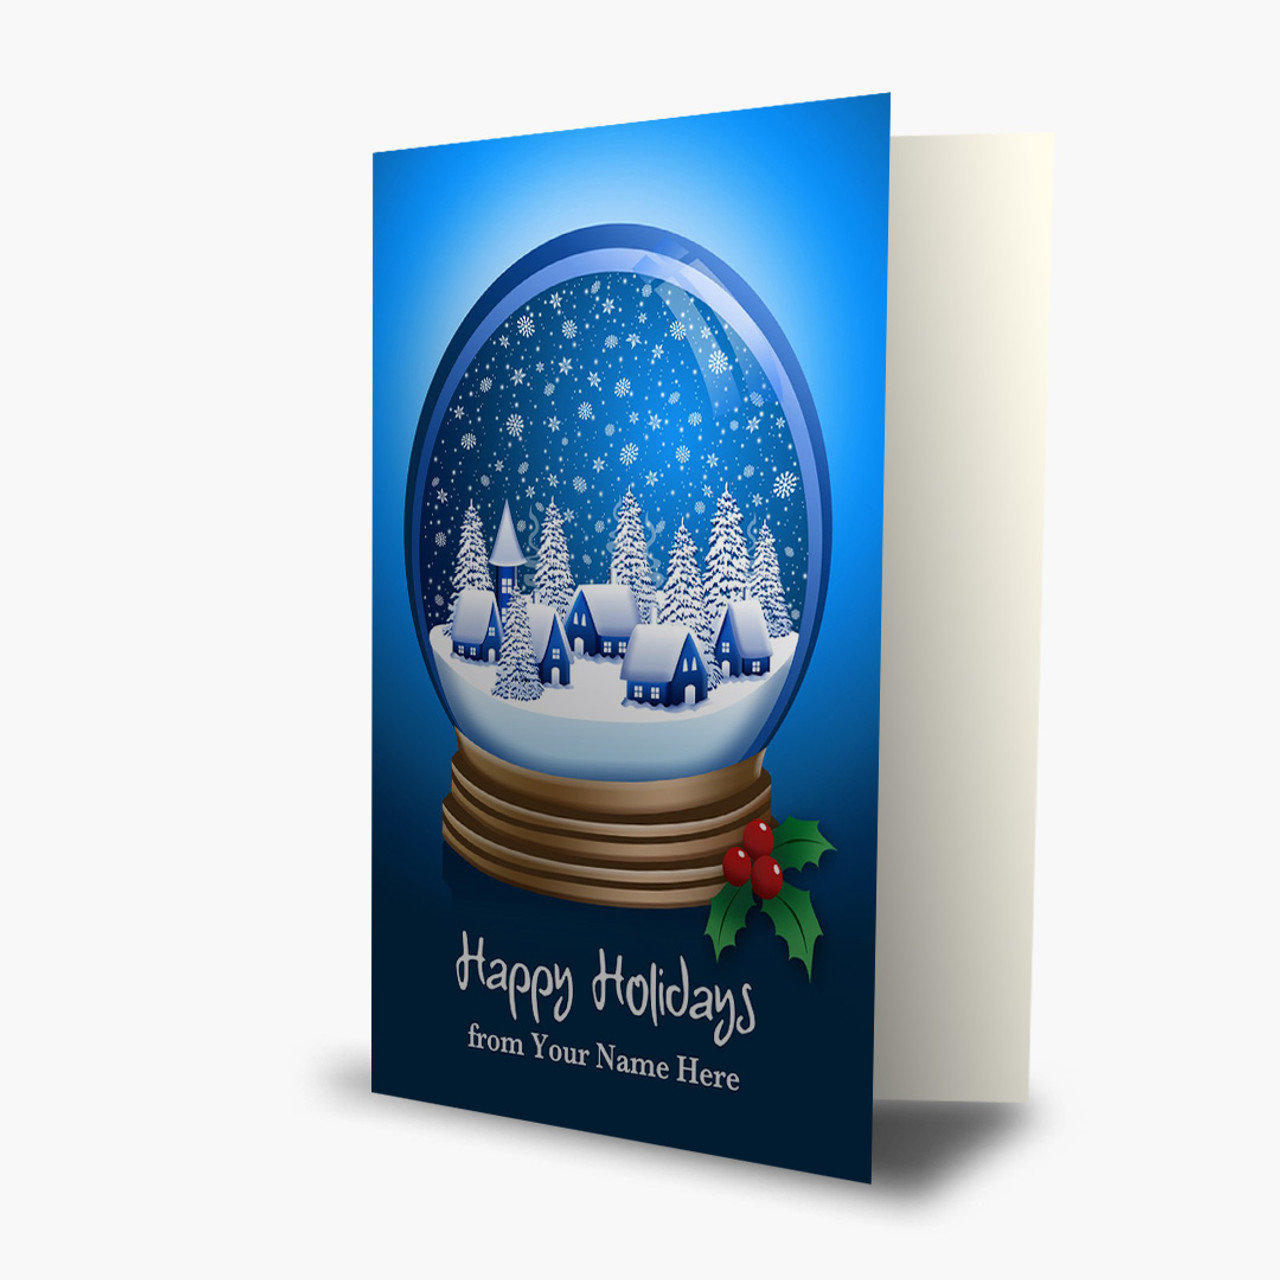 Winter Snow Globe Christmas Card